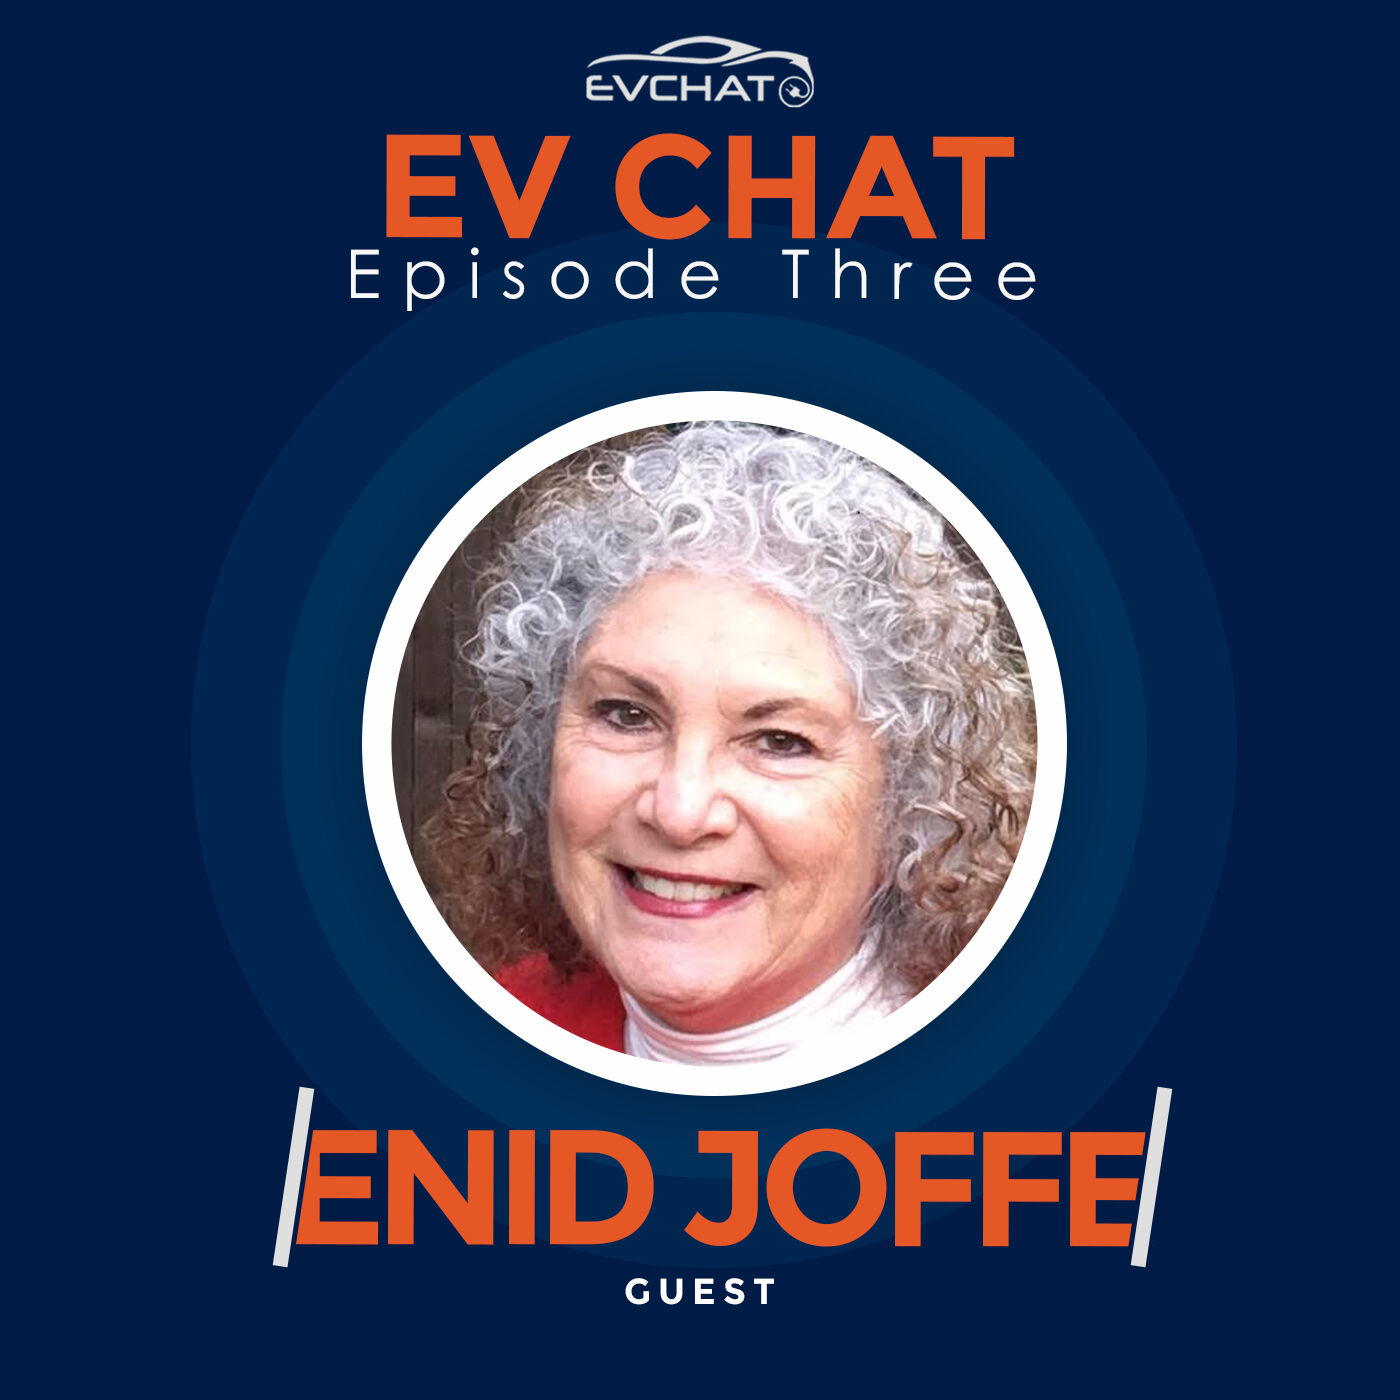 Enid Joffe of Clean Fuel Connection on Electric Fleet Solutions